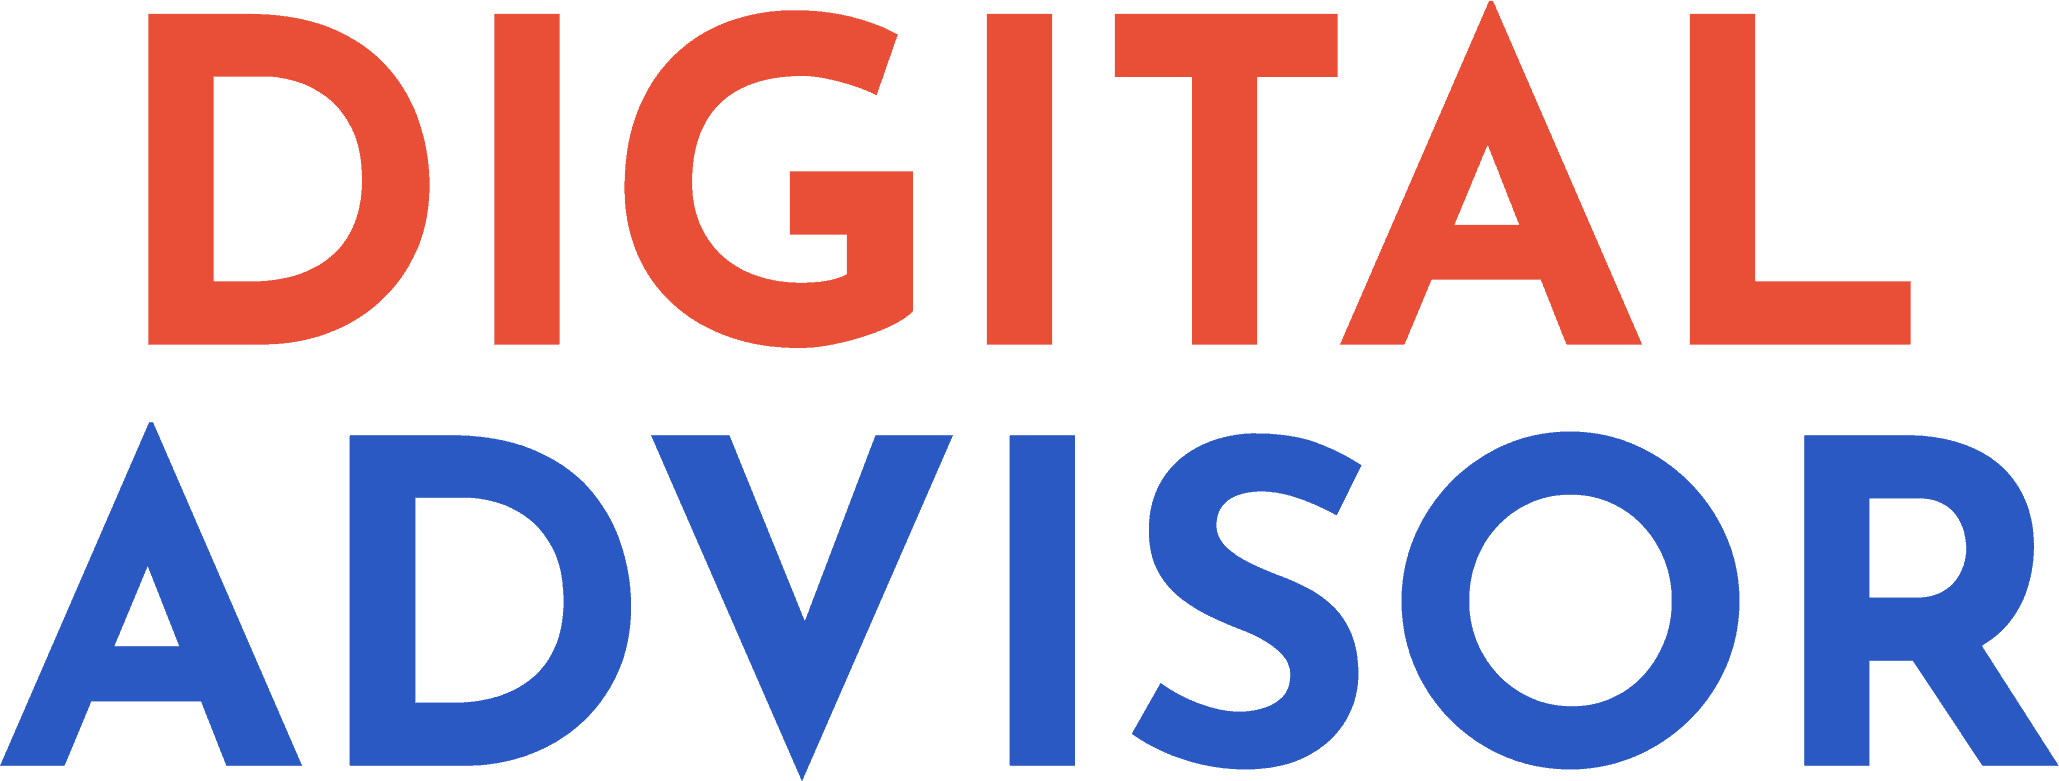 Digital Advisor